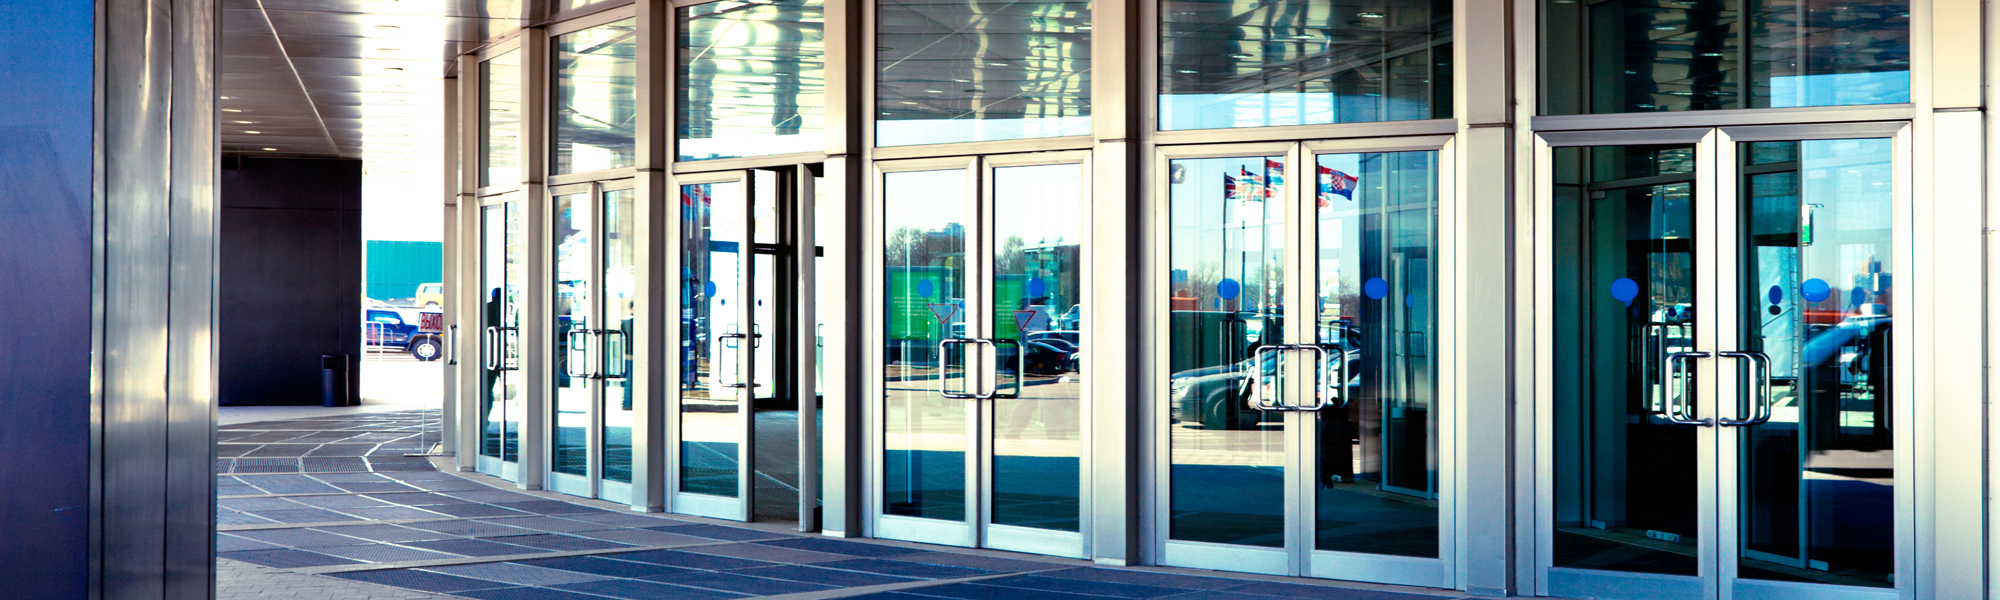 Entry Doors Safety Glass Houston TX